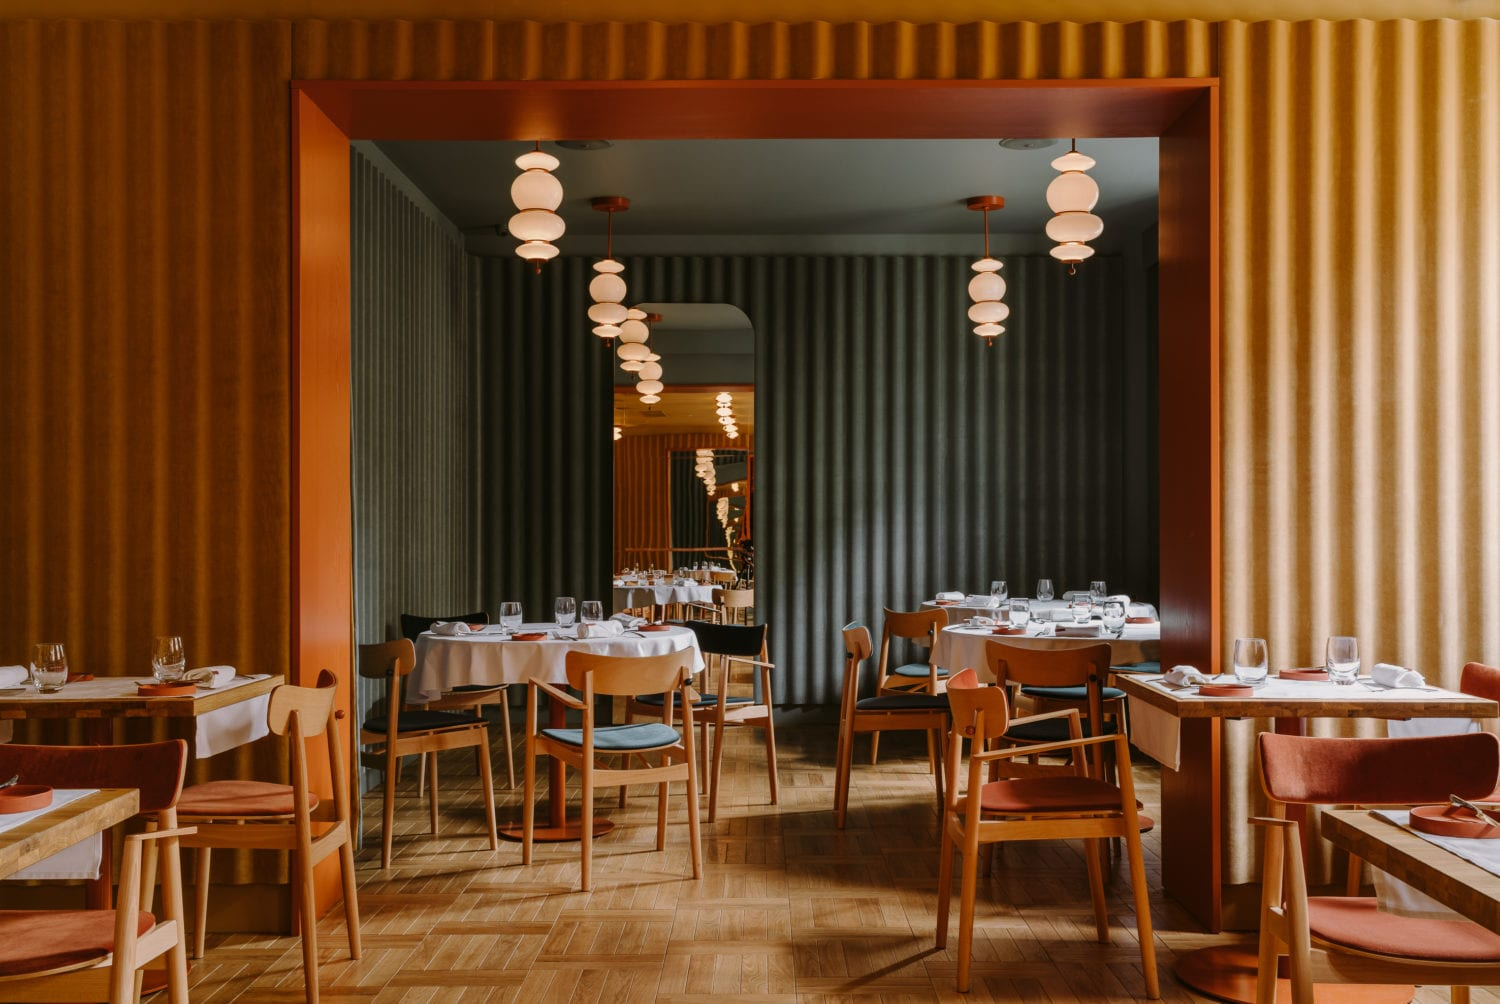 Opasly Tom Restaurant In Warsaw Poland By Buck Studio Yellowtrace 21